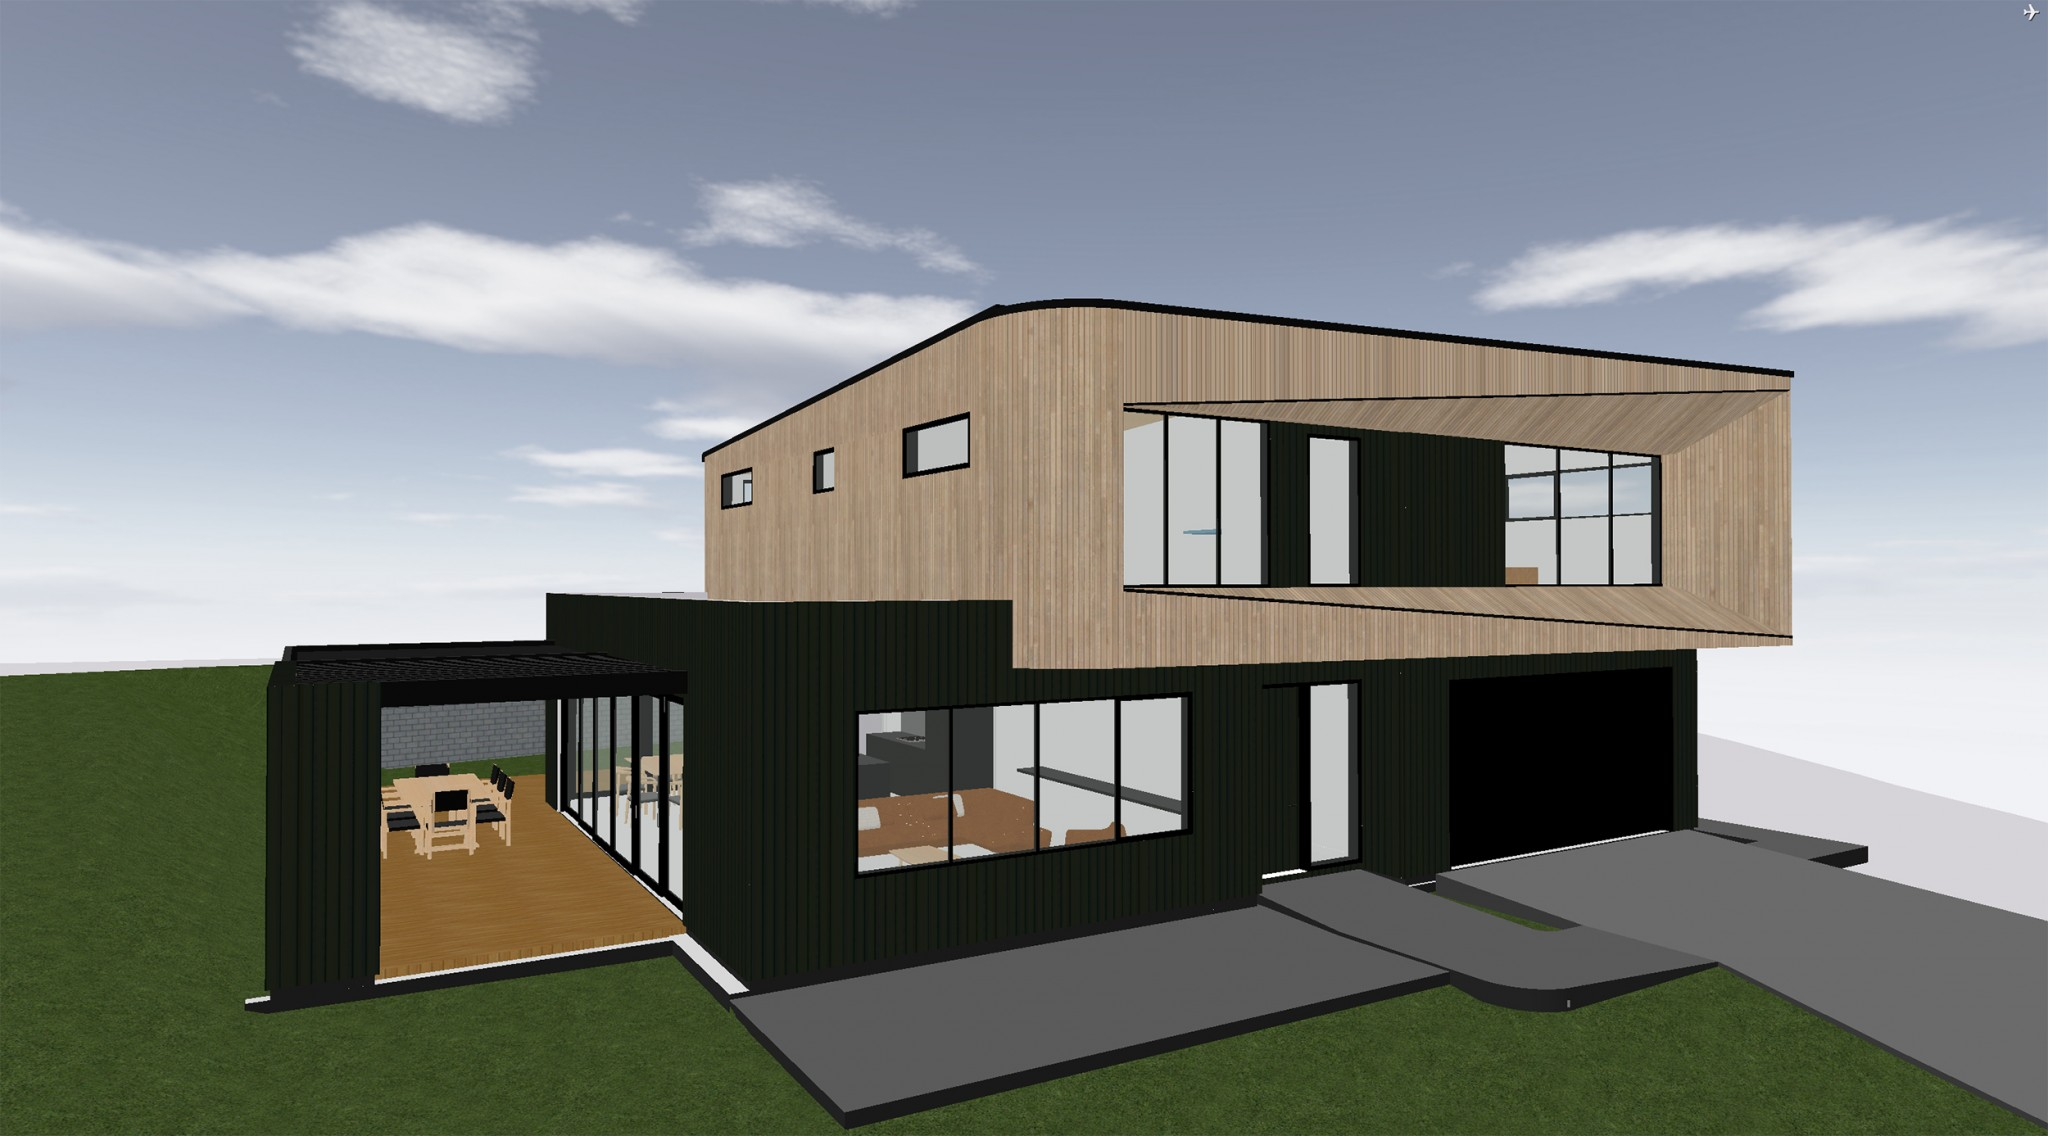 Design and build plan's side view - Plan Beech